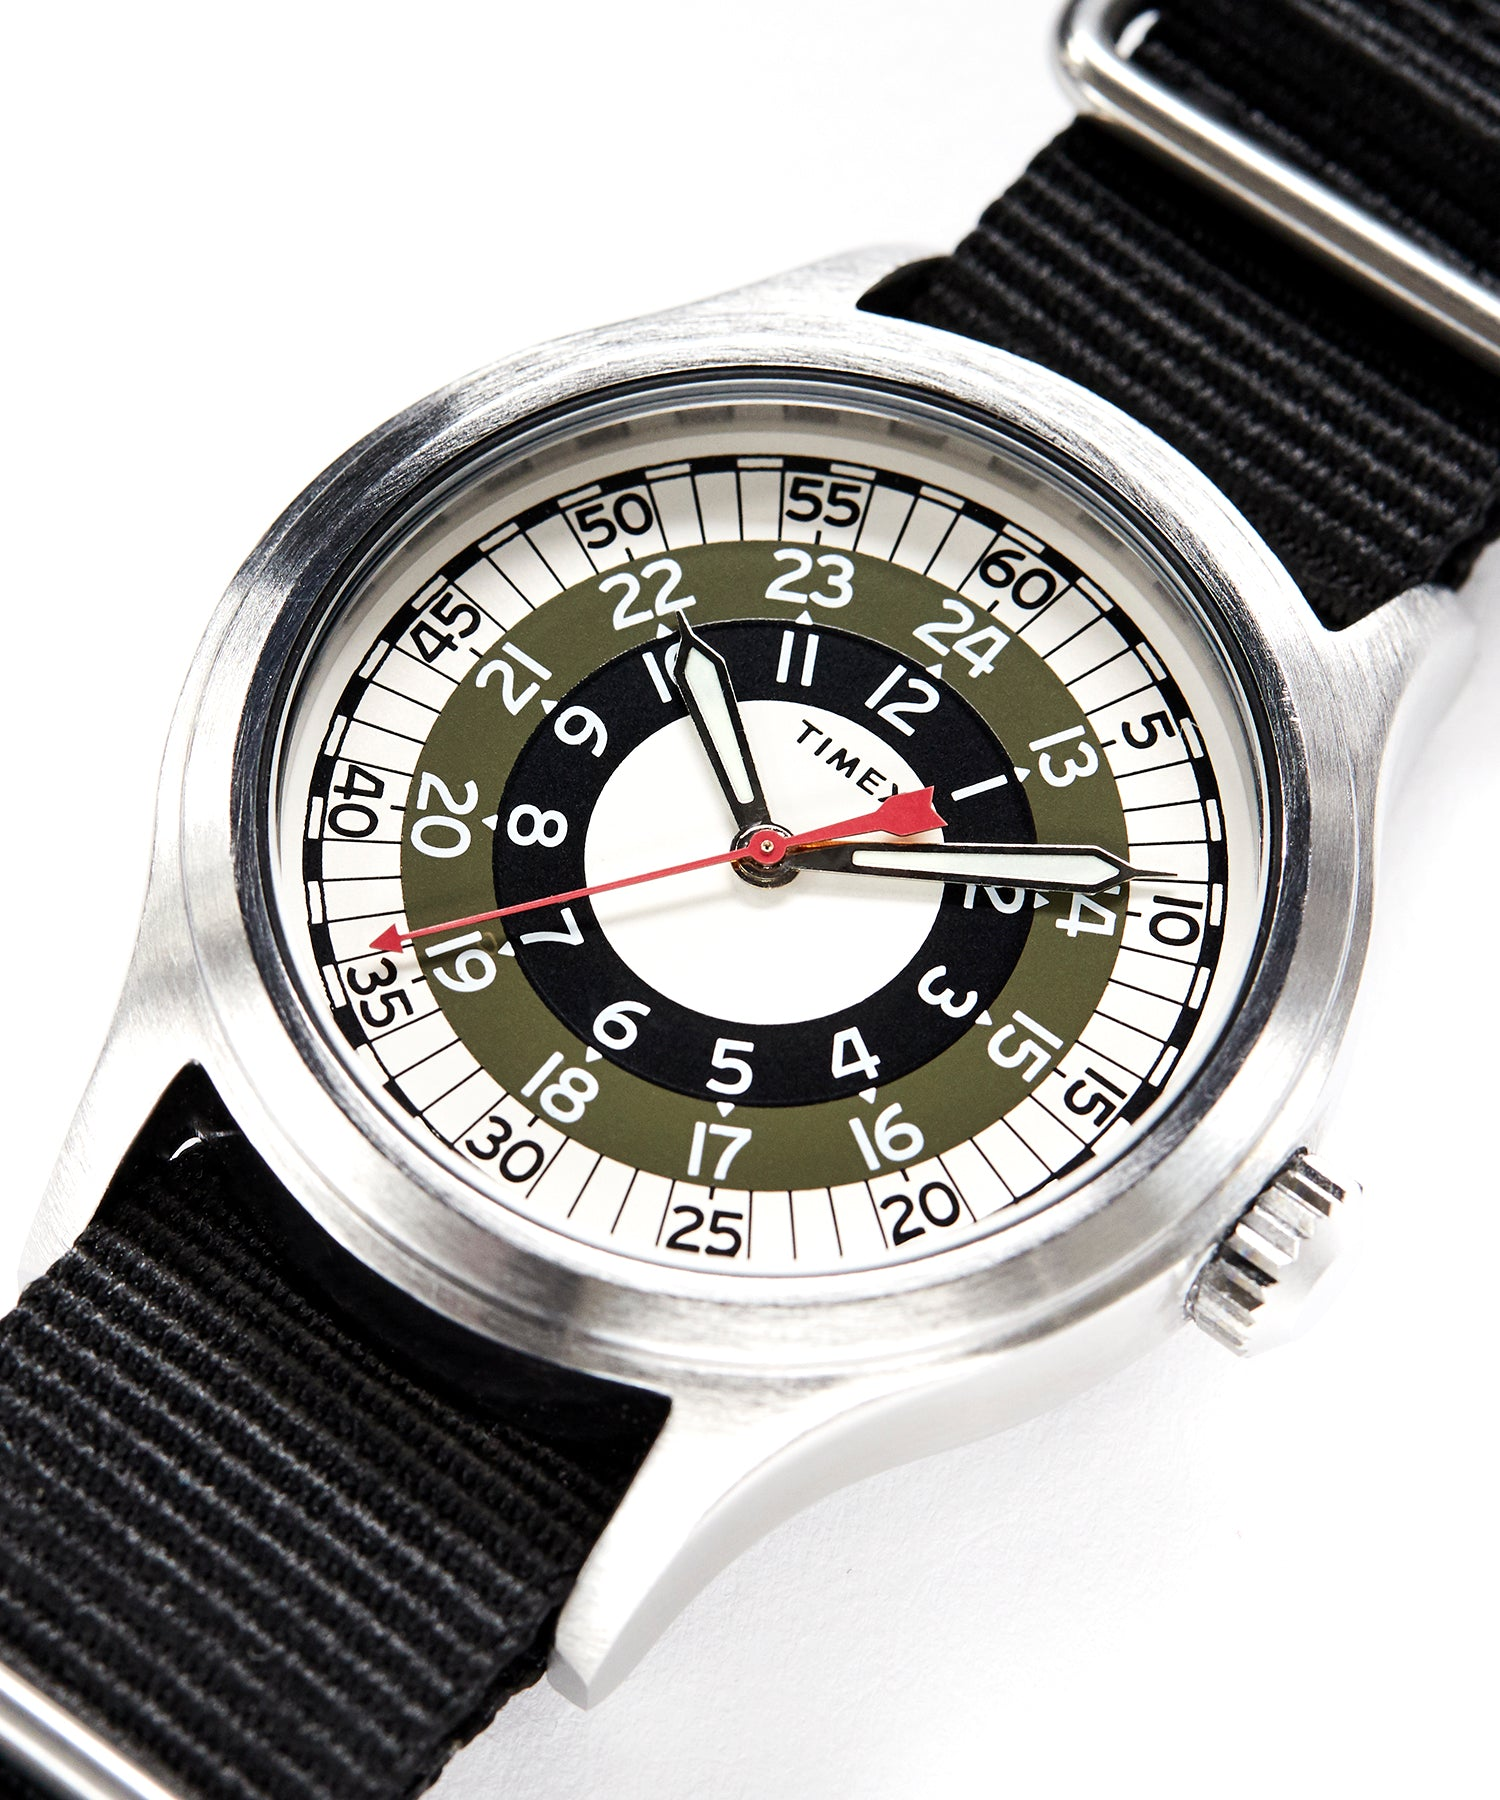 The Mod Watch in Olive 40mm